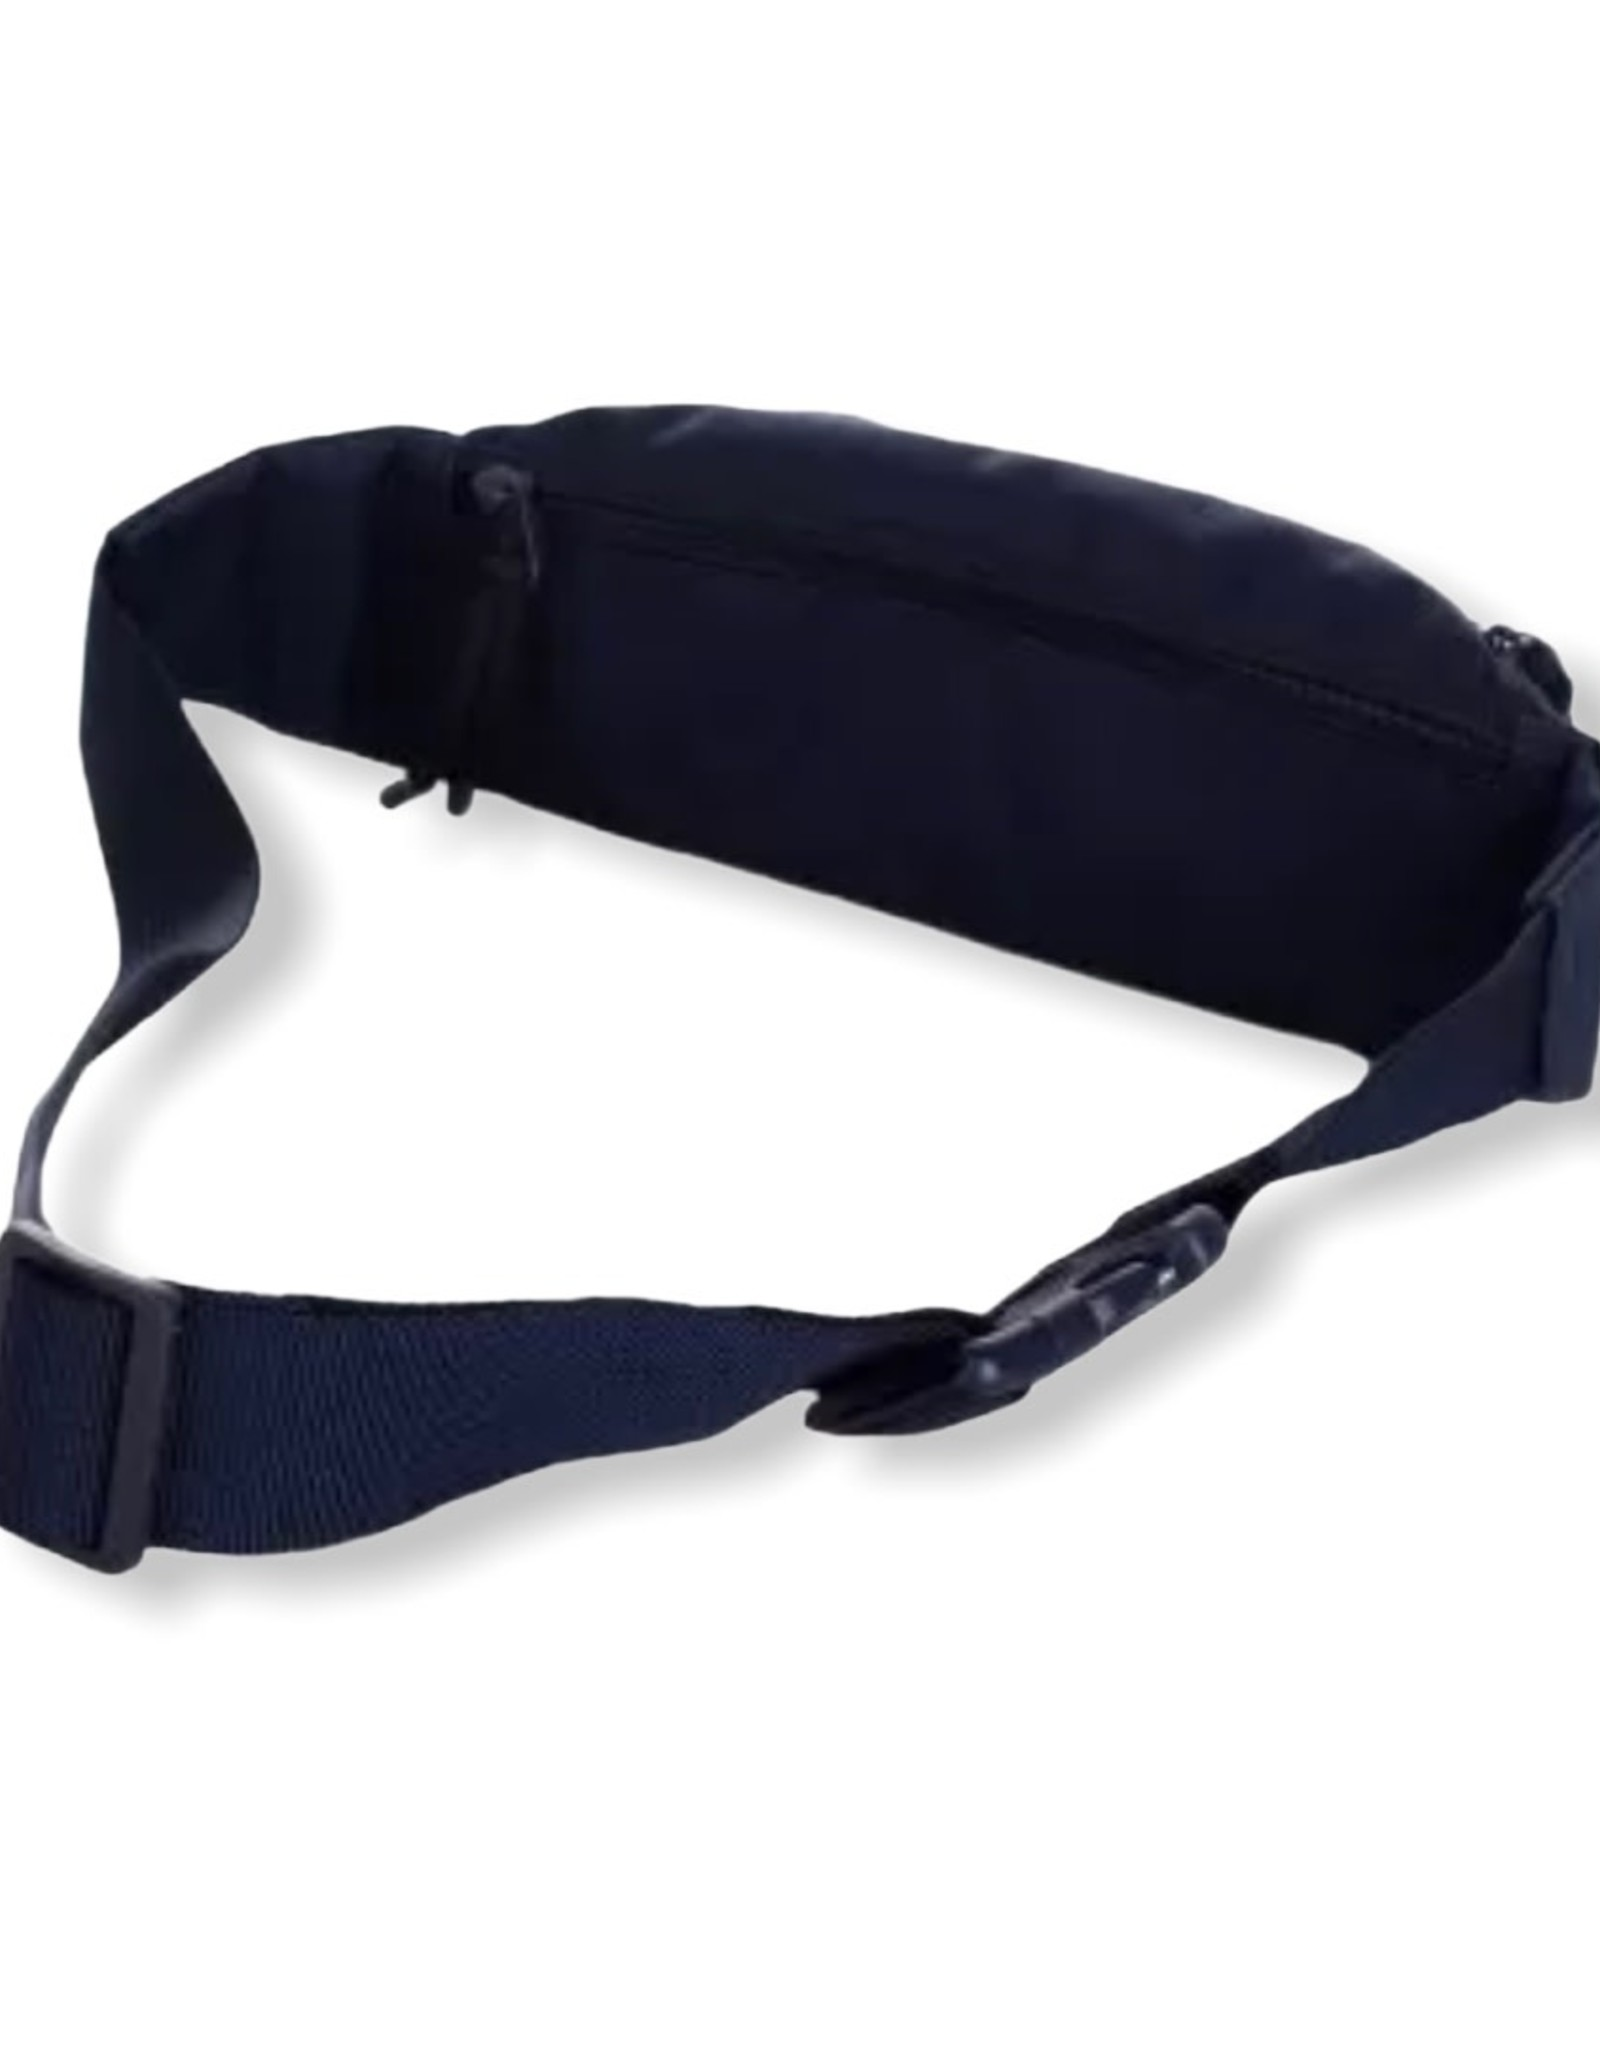 Lacoste Lacoste Waist Bag 100% Polyester